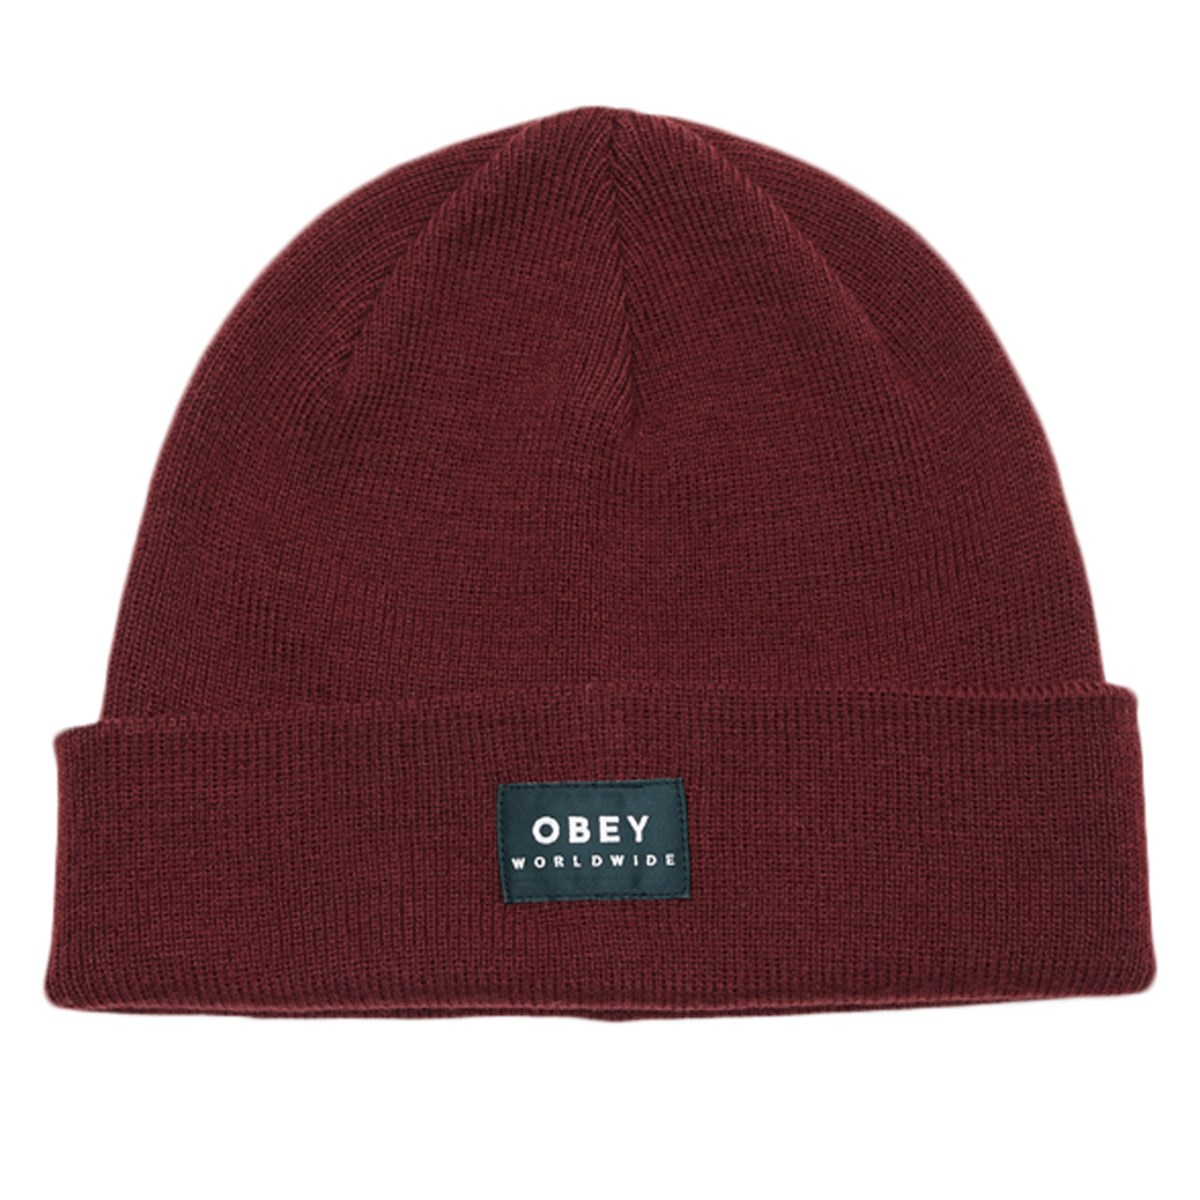 Vernon II Beanie in Dark Red